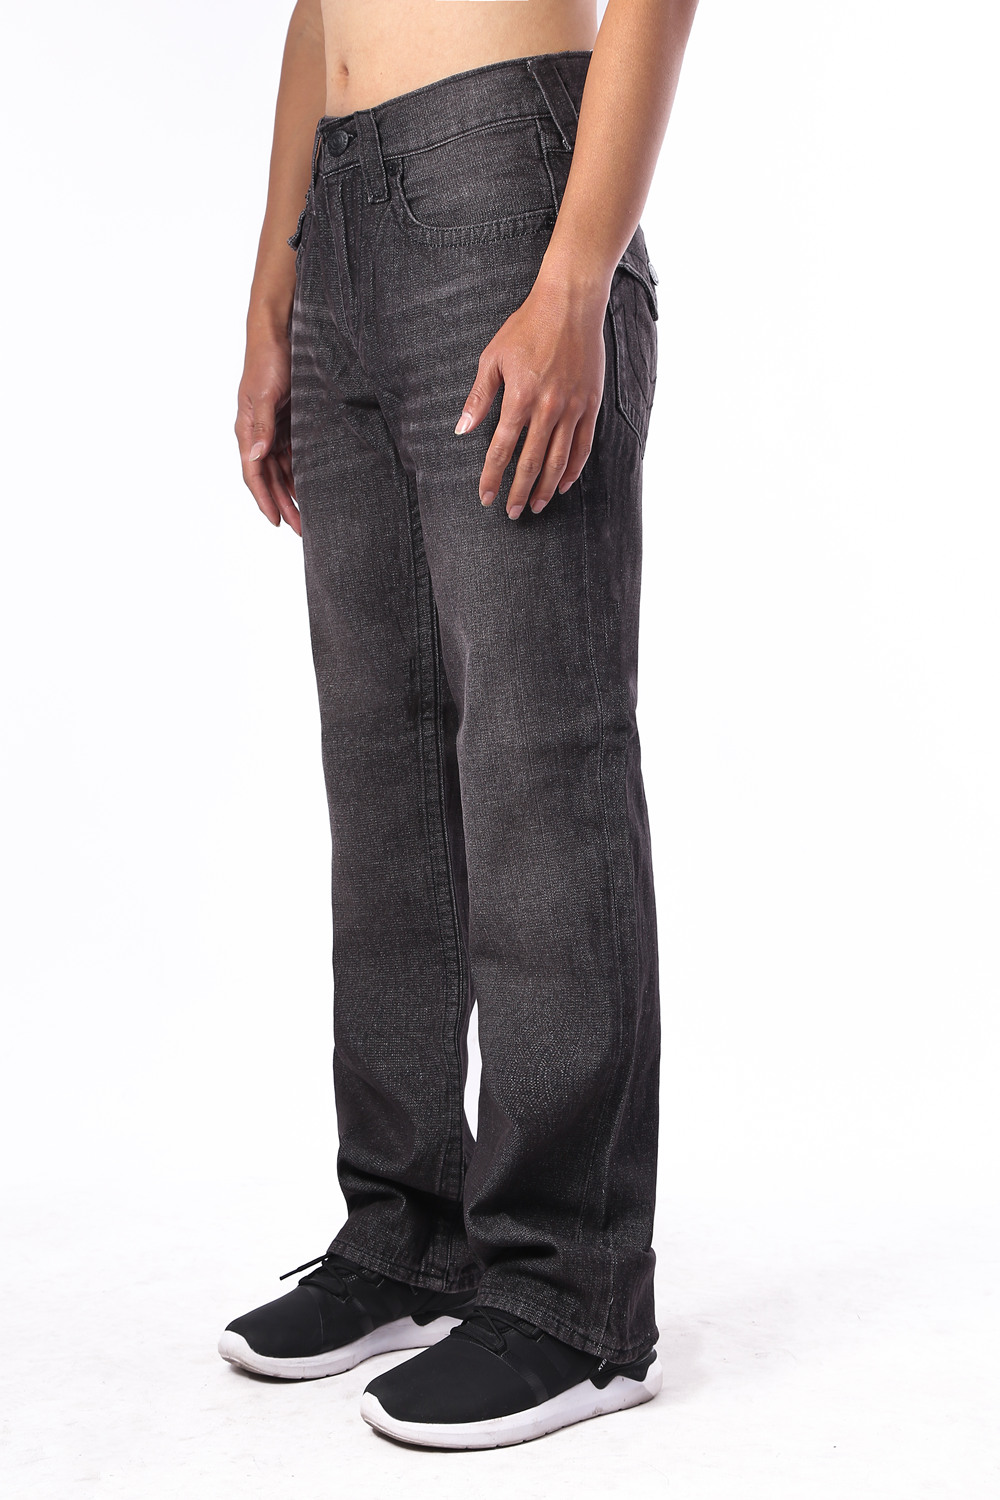 True Religion Mens Jeans Straight Black Side